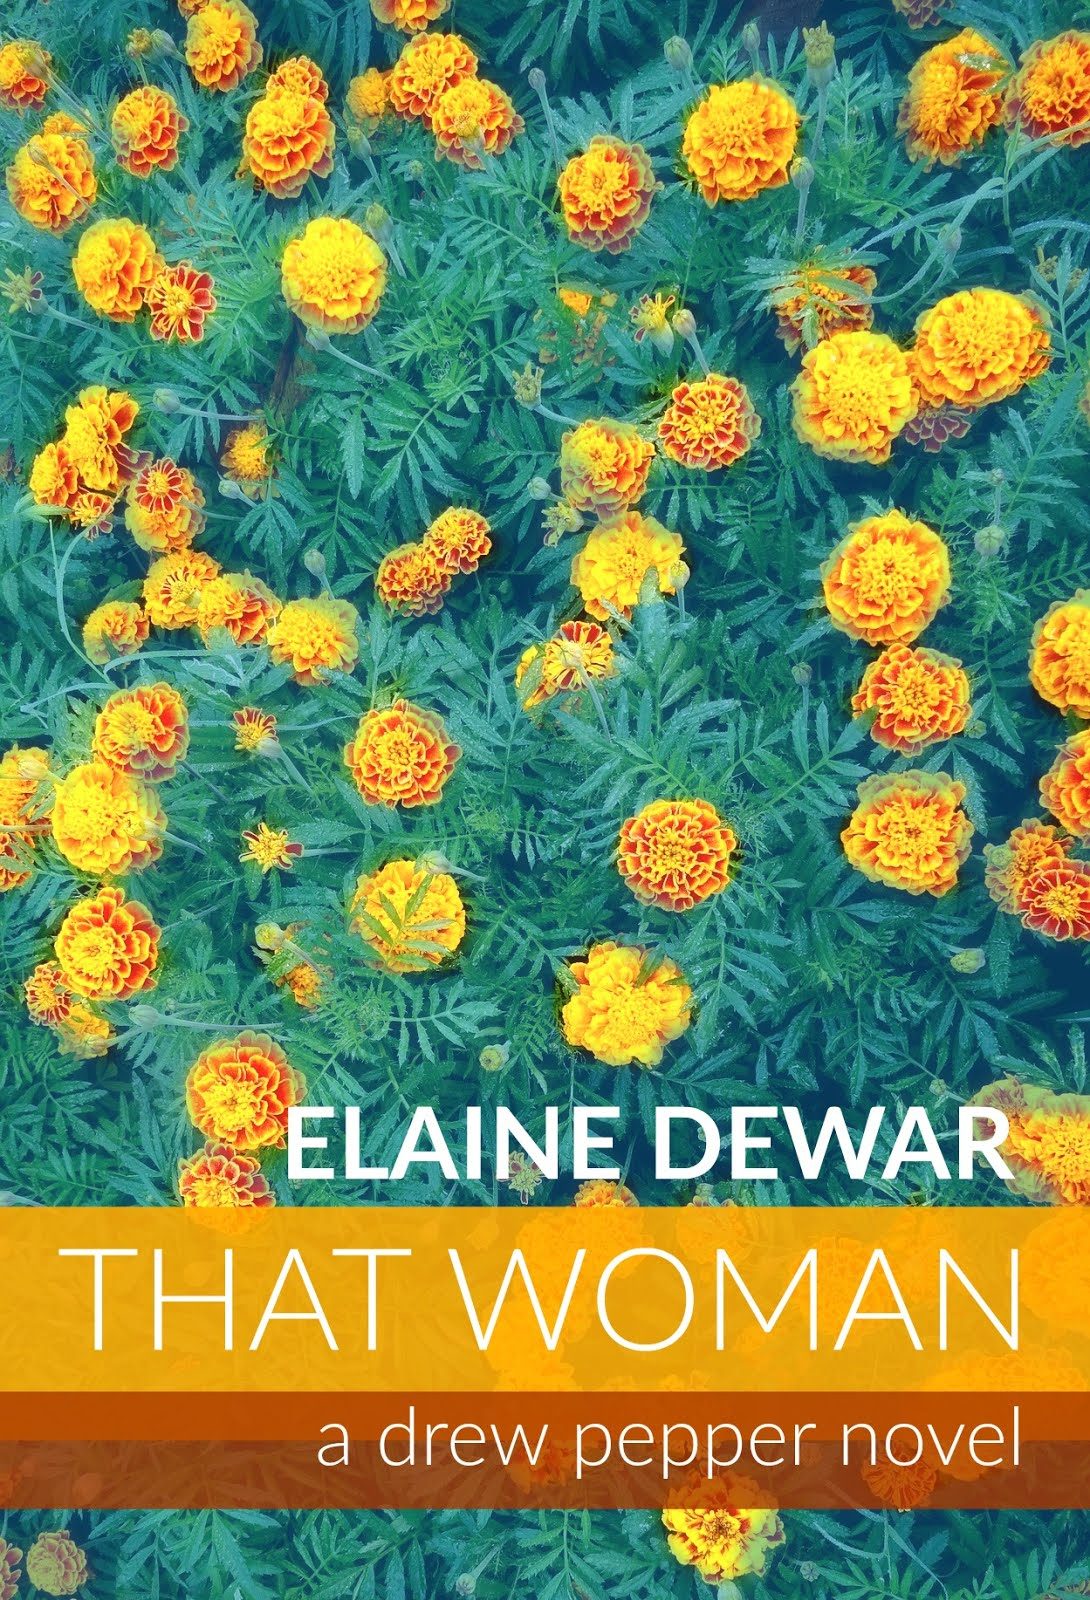 FREE NOVEL: THAT WOMAN